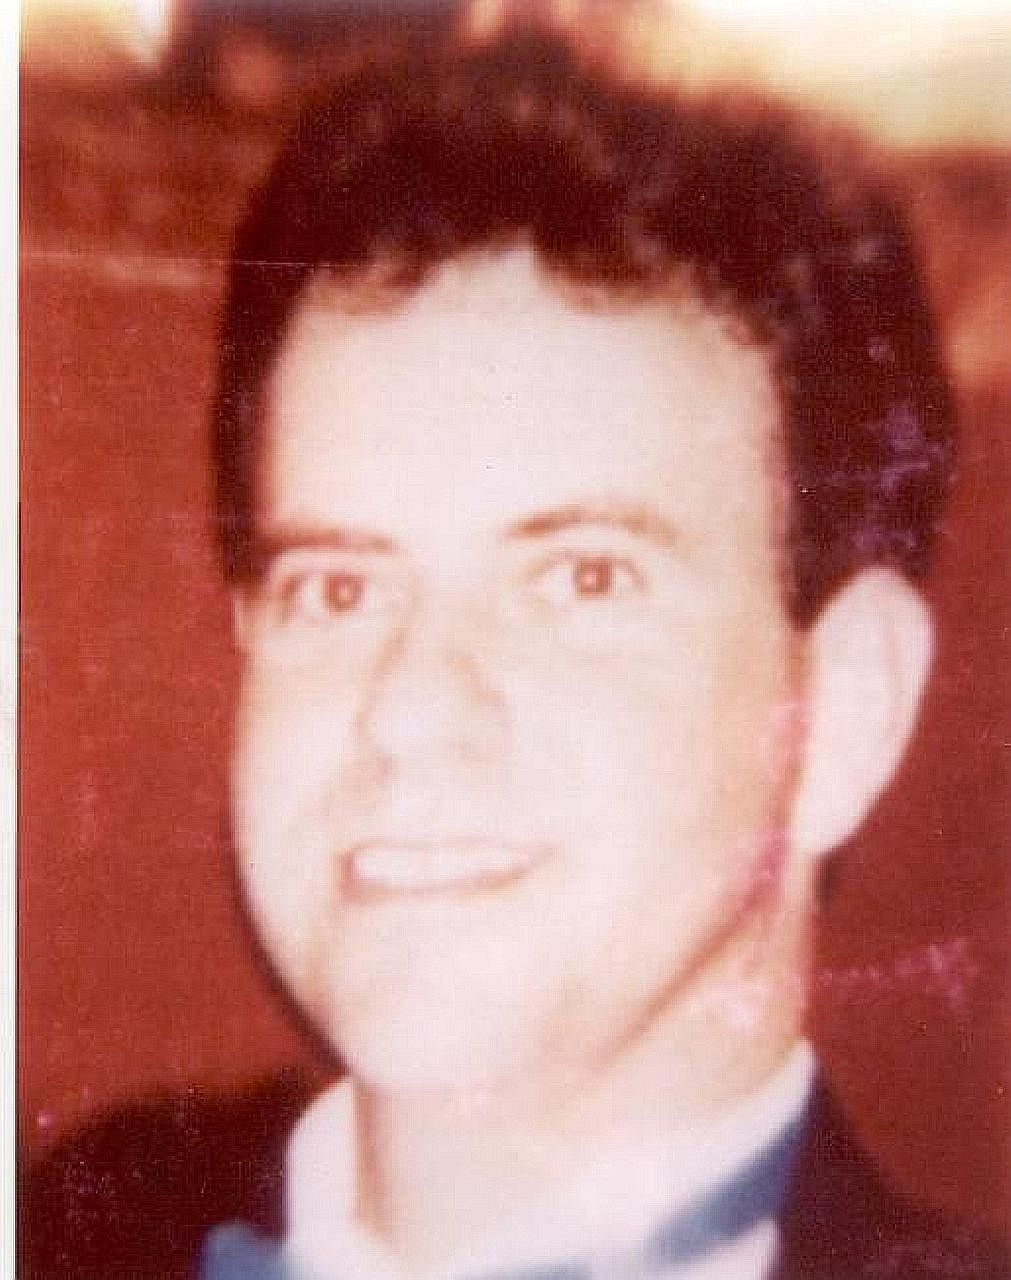 Mr Moldt was 40 years old when	he went missing in November 1997. The remains of Mr William Moldt, missing since 1997, was found in the car submerged in a retention pond in Wellington, Florida.